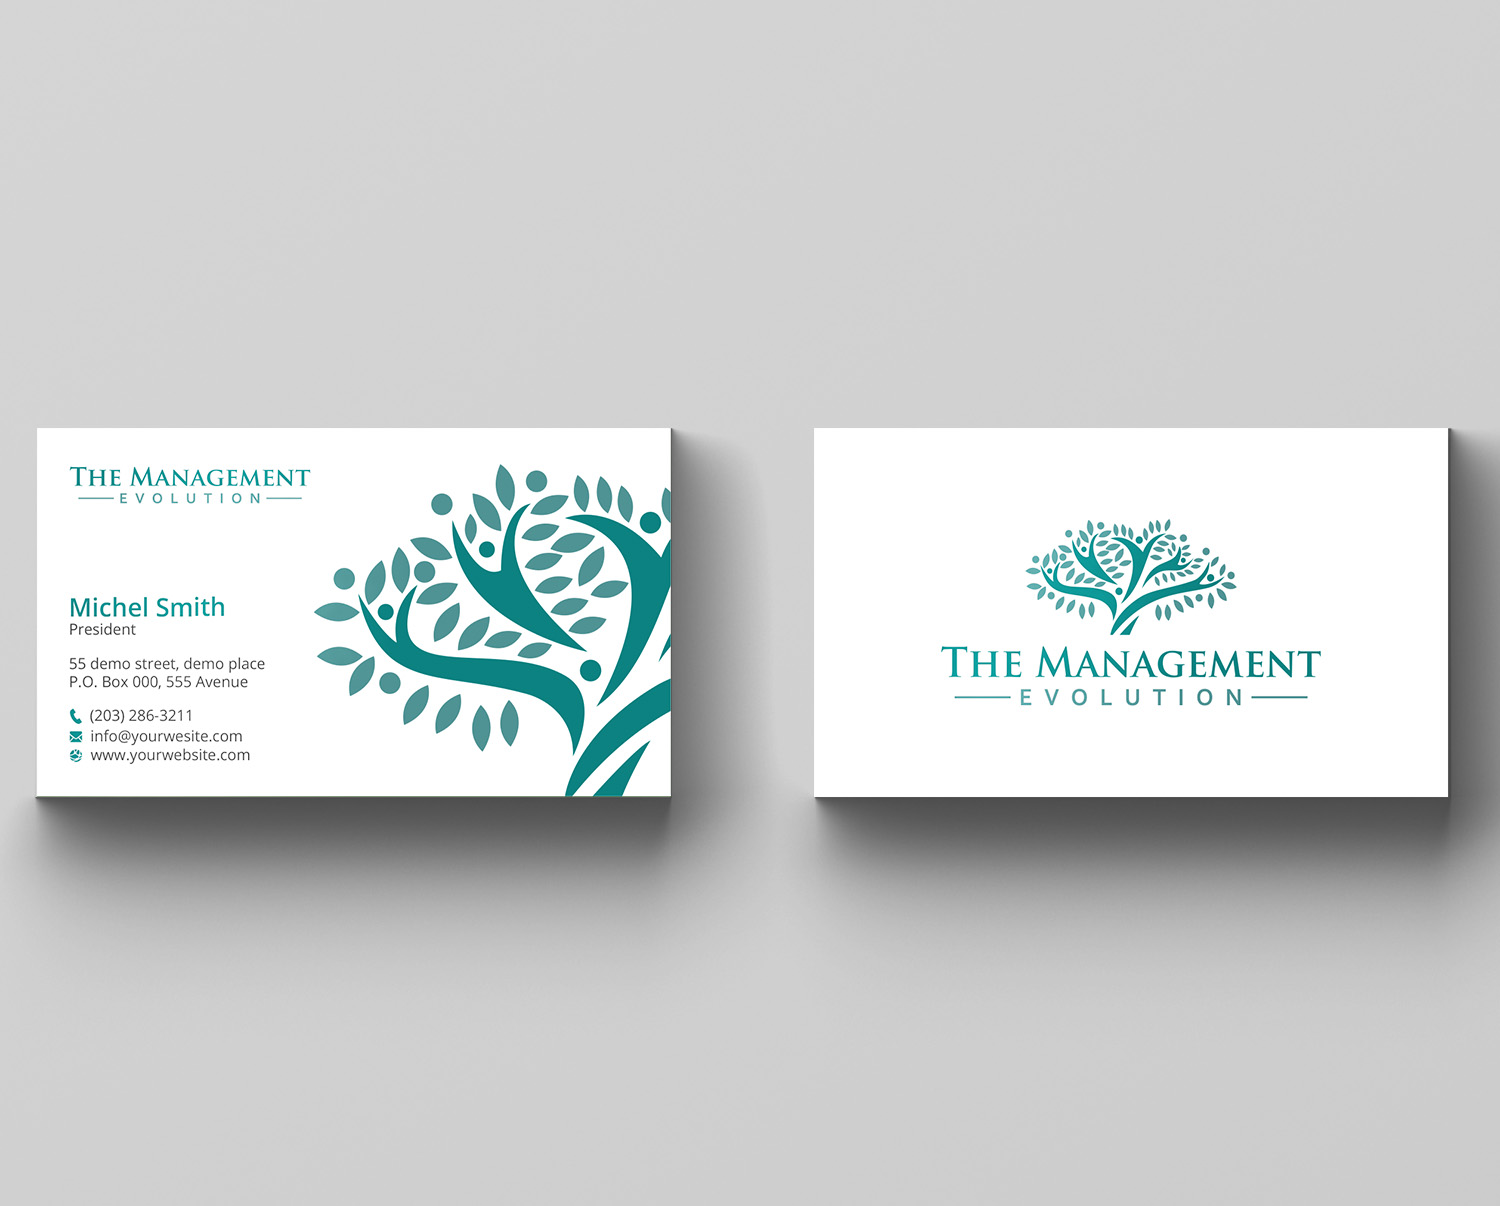 Elegant modern management consulting business card design for business card design by rightd for training tailor sl design 14272390 reheart Image collections